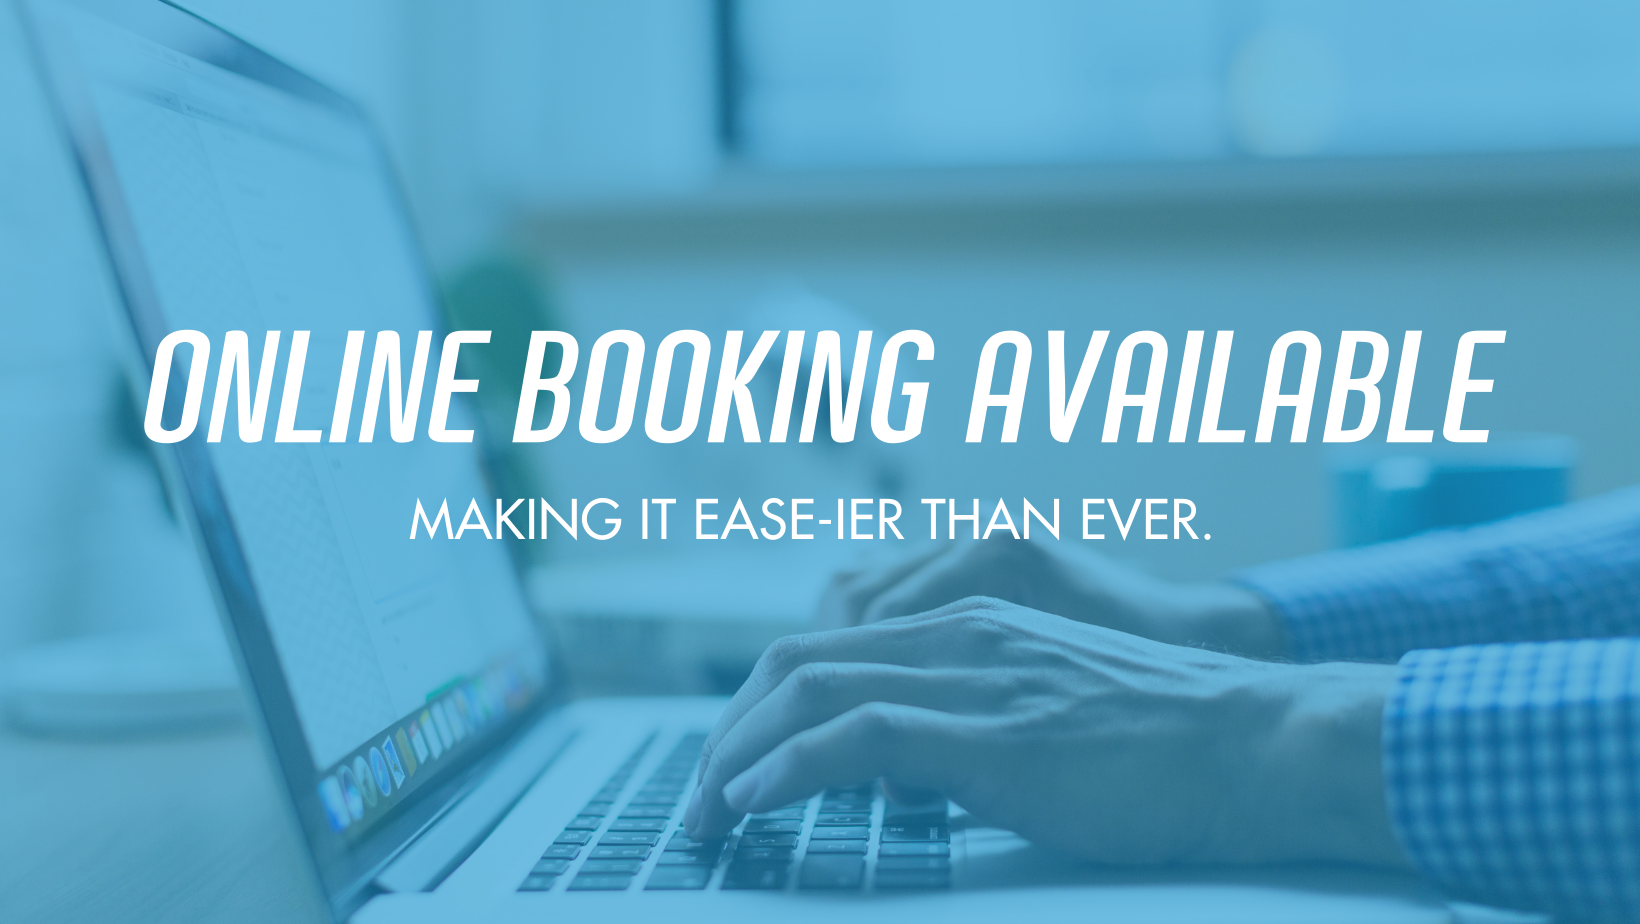 Online Booking Makes Scheduling Ease-ier Than Ever